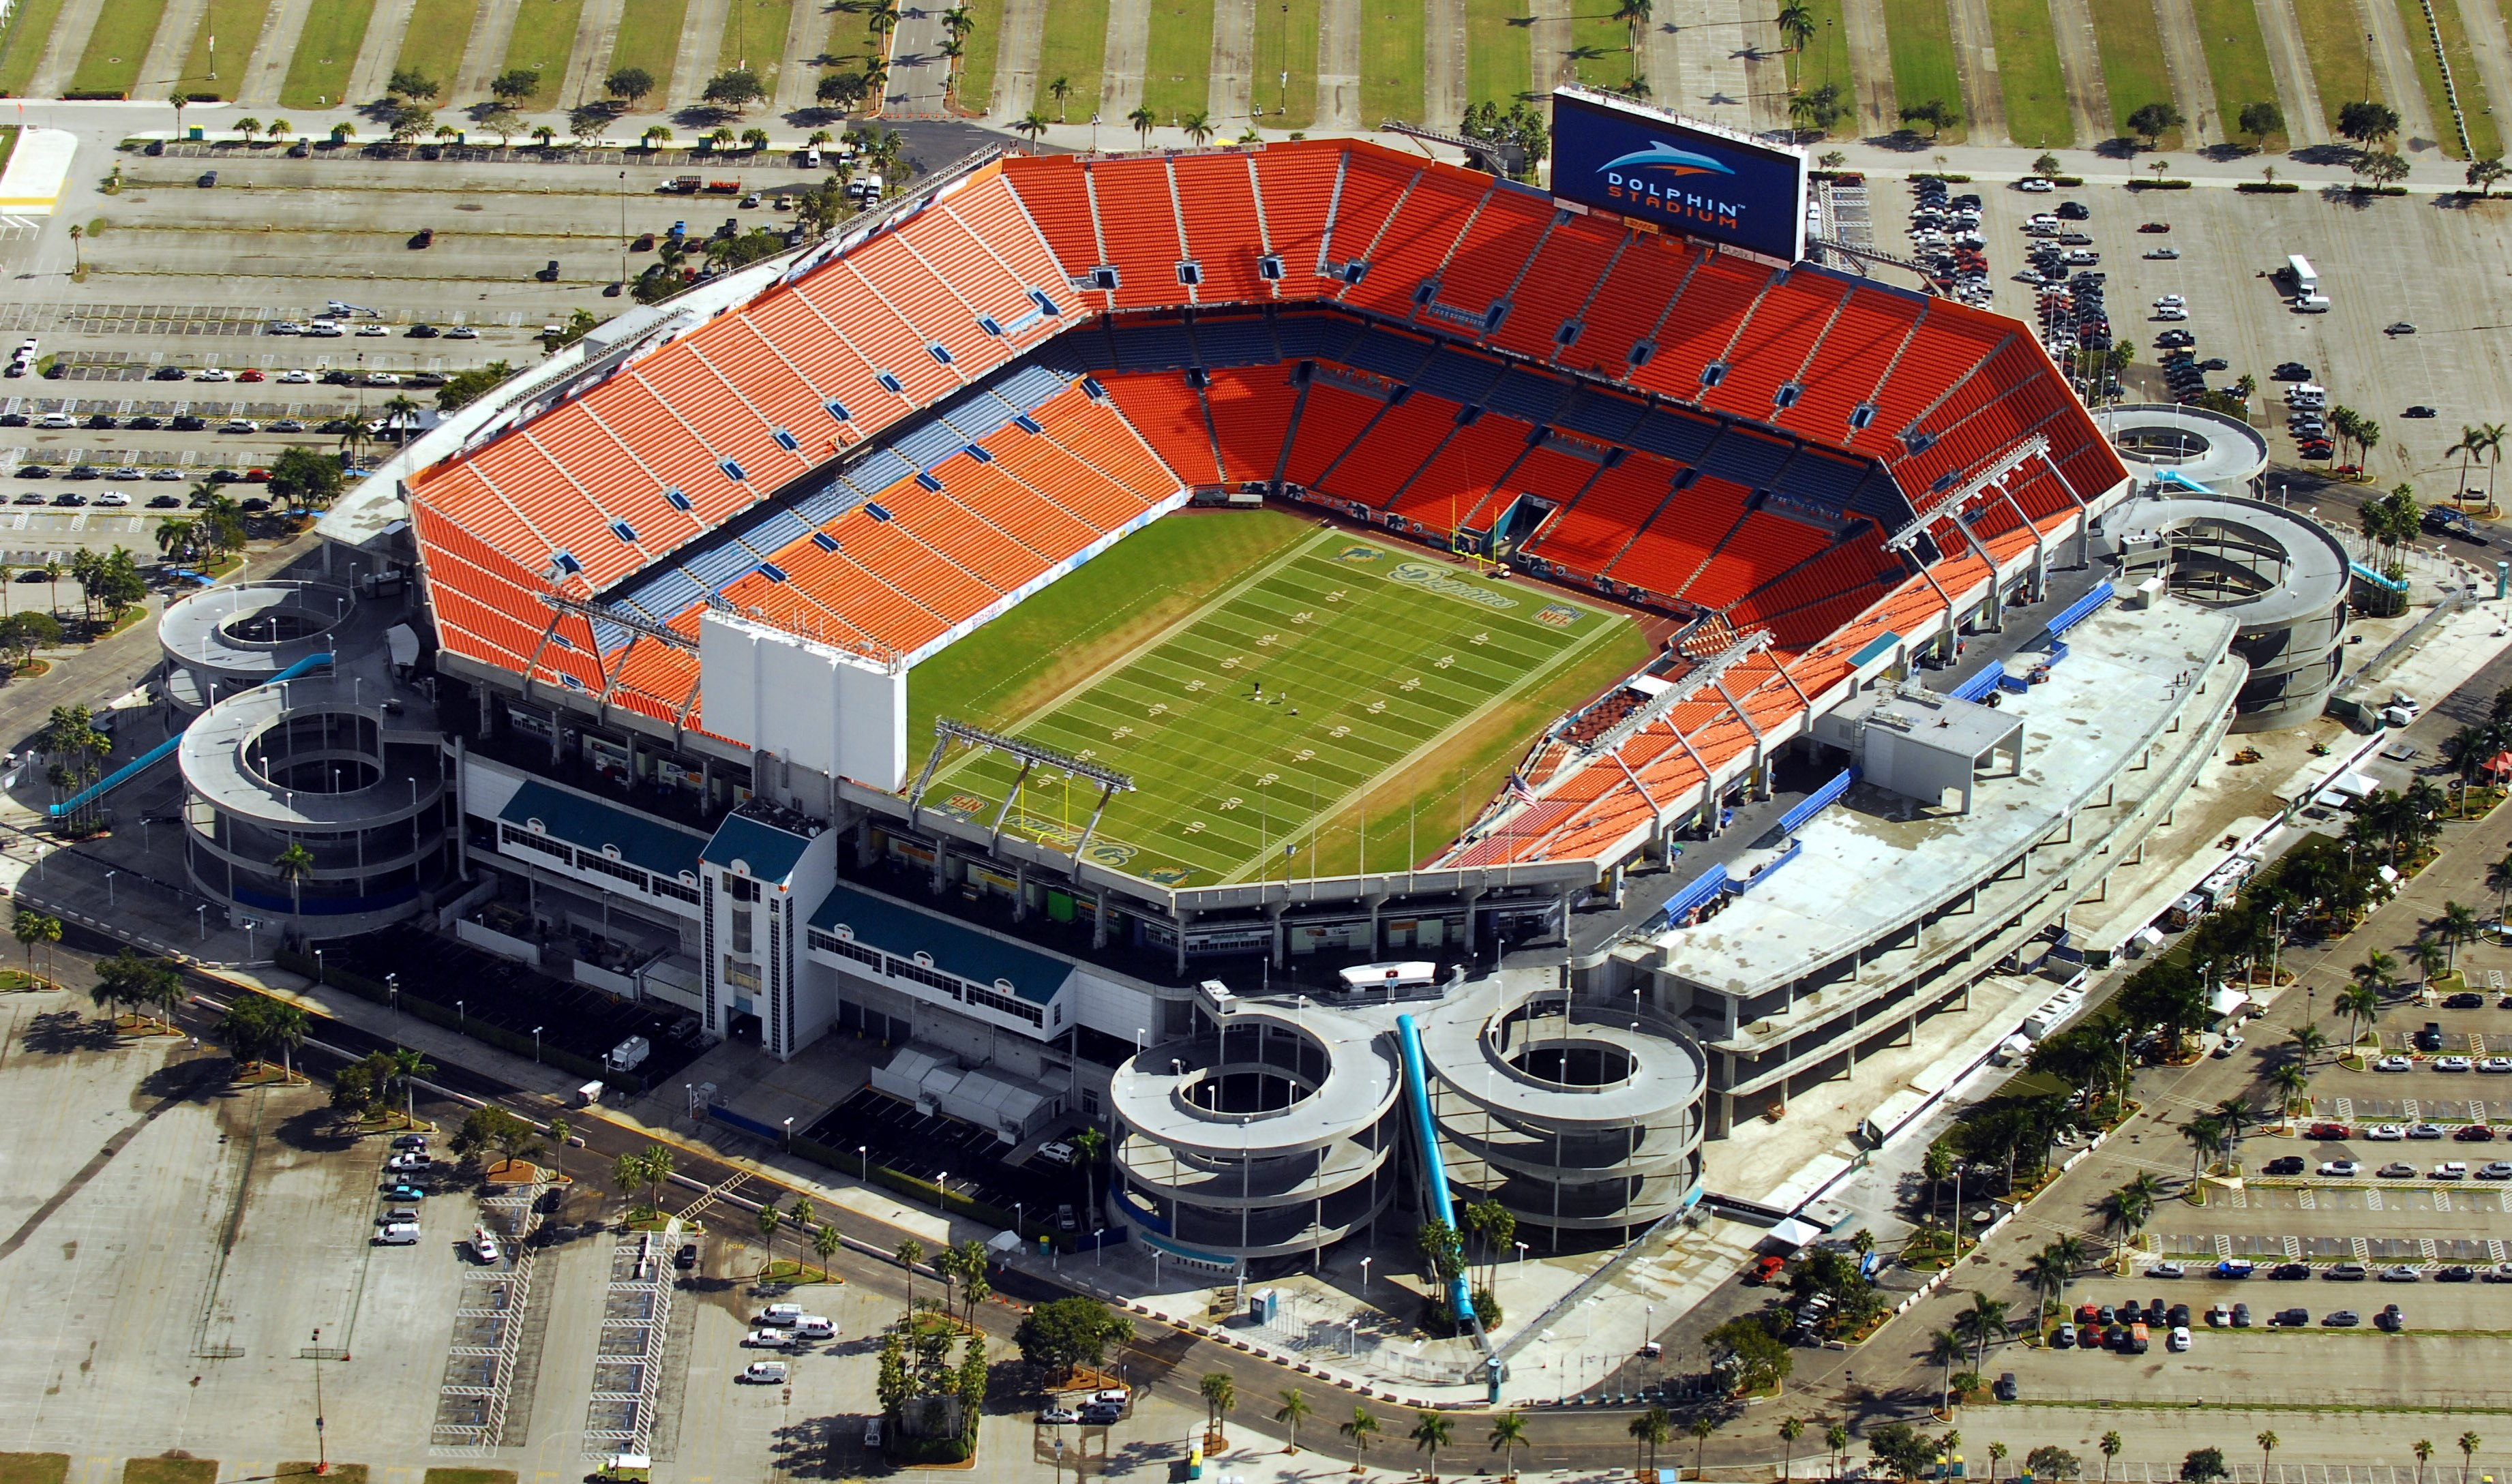 Home of the Miami Dolphins, this stadium has been known by many names since it opened in 1987, including Joe Robbie Stadium, Pro Player Park, Pro Player Stadium, Landshark Stadium and Dolphins Stadium. It has hosted almost an equal number of Super Bowls, with its fifth, Super Bowl XLIV, scheduled for February 2010.